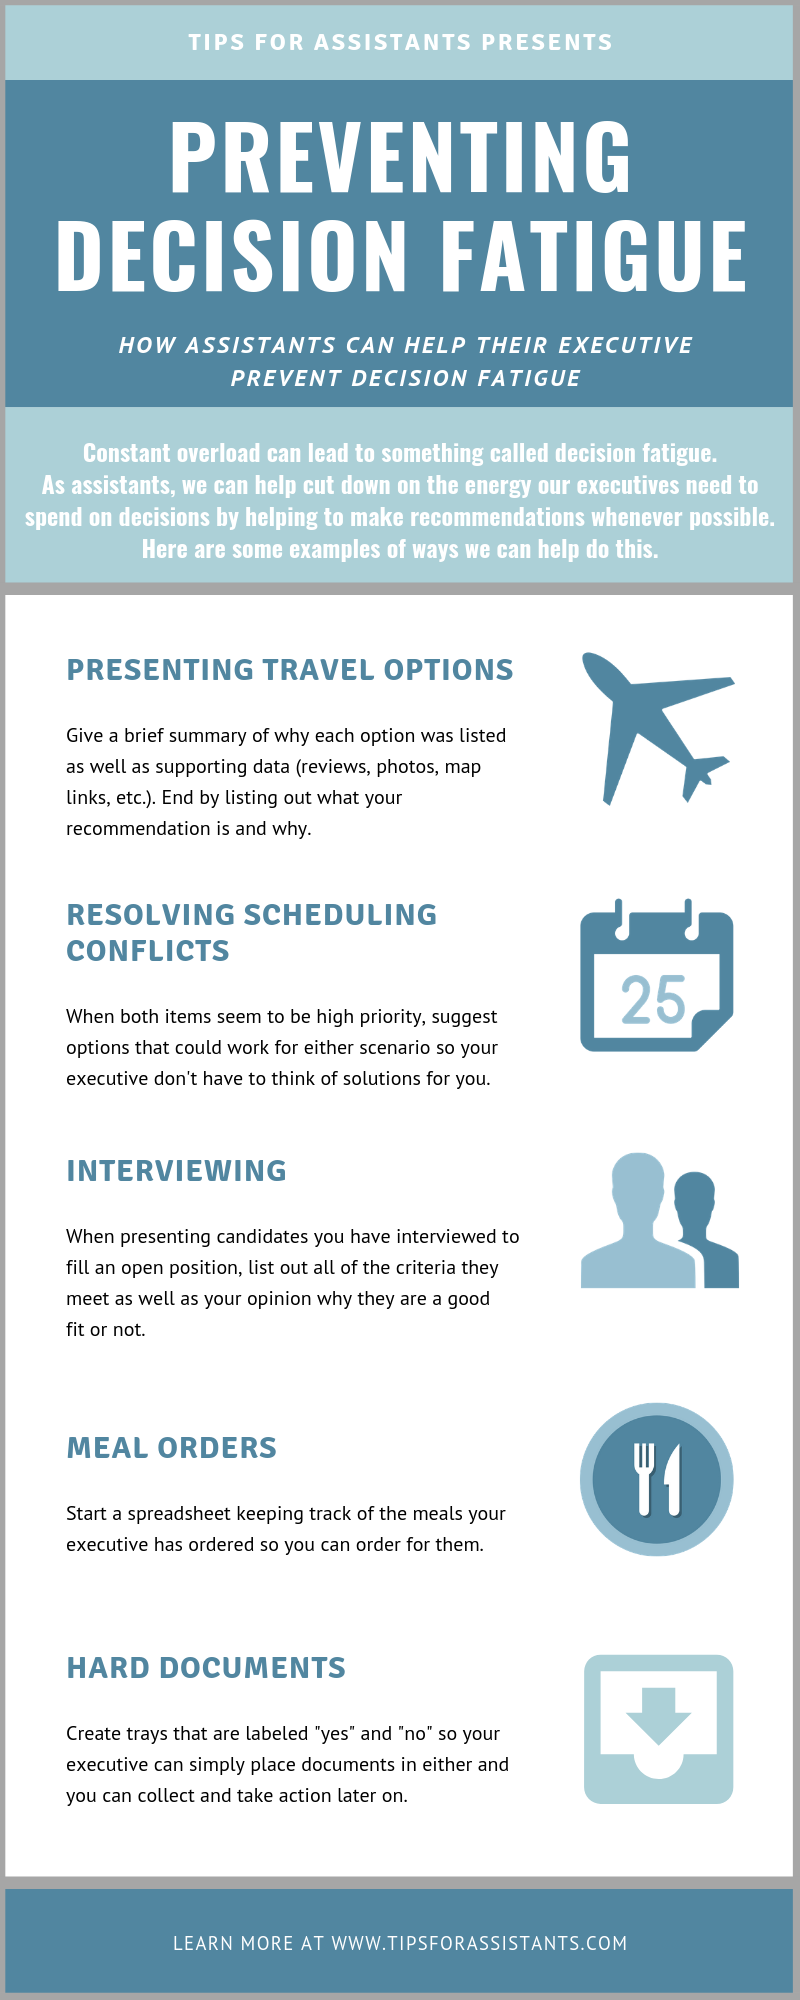 How to Help Your Executive Prevent Decision Fatigue [Infographic]